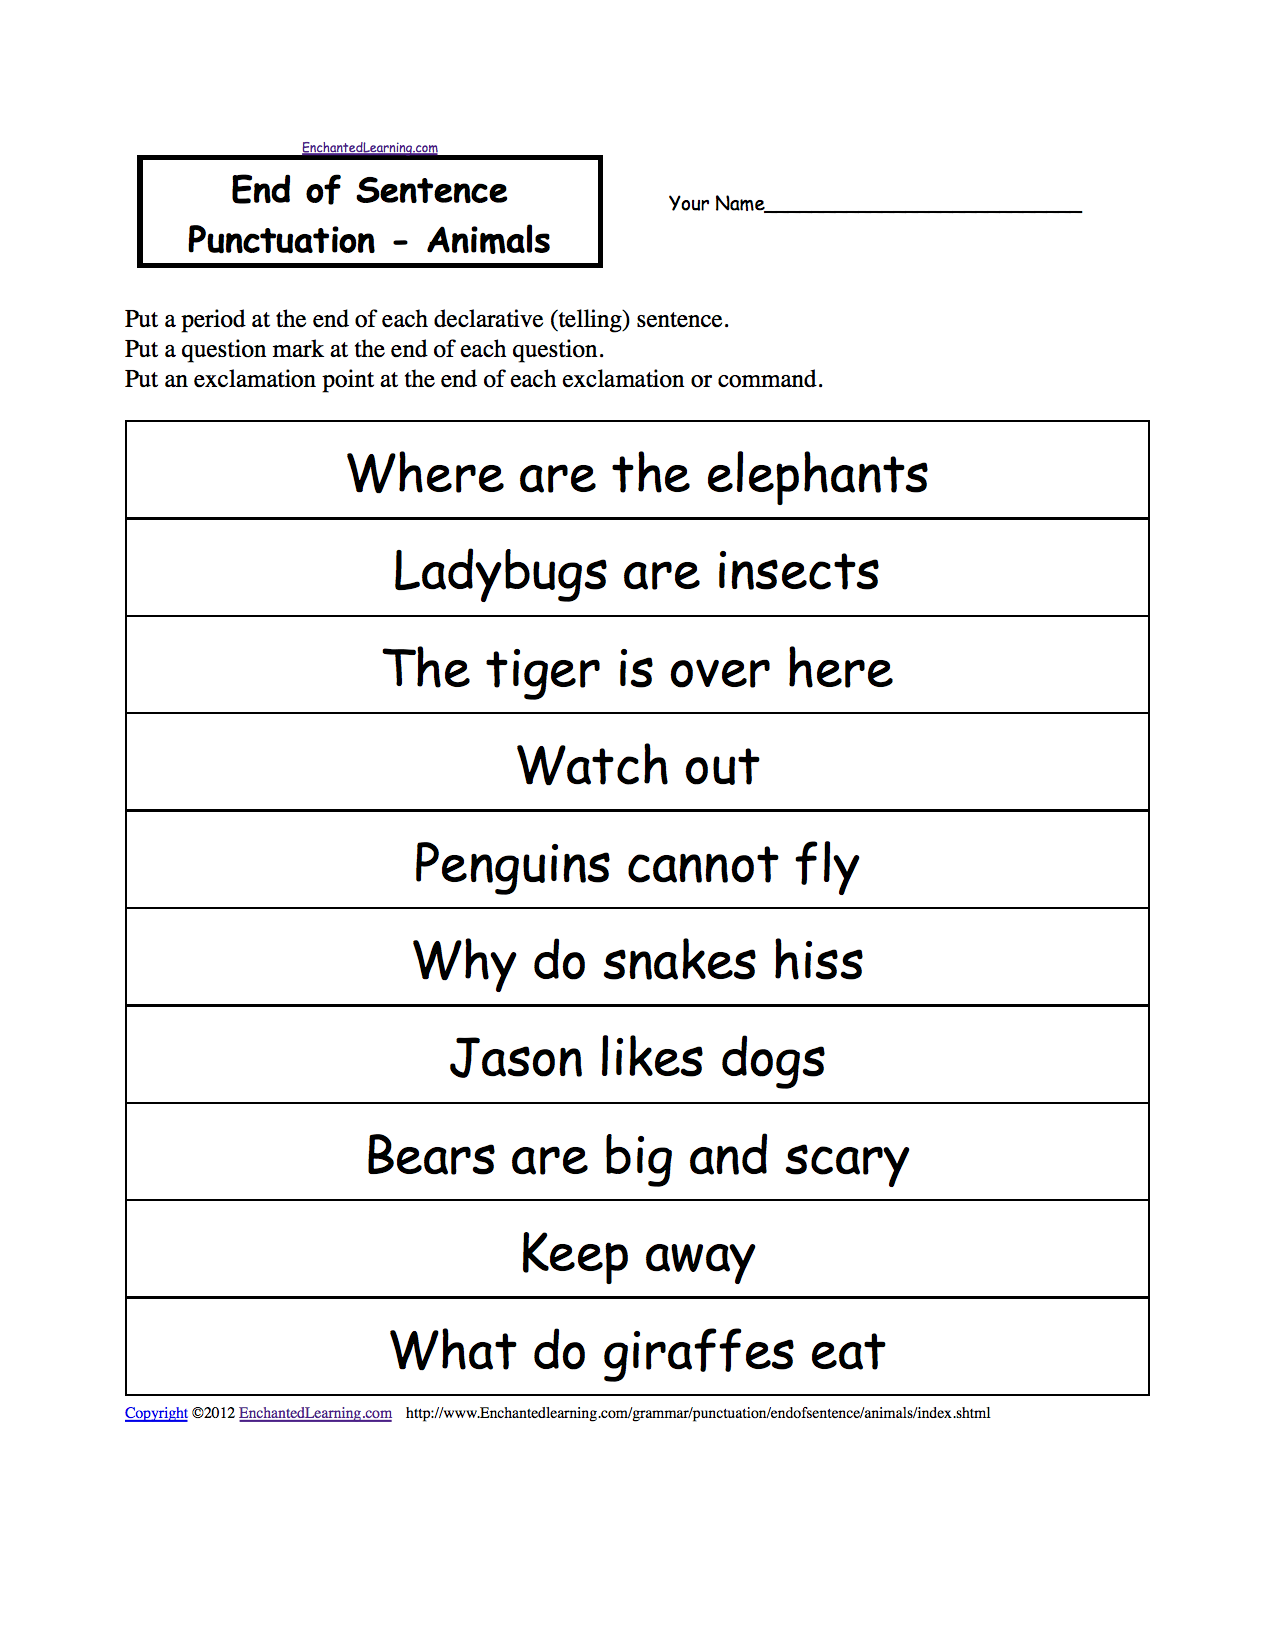 End of Sentence Punctuation Printable Worksheets – Ending Punctuation Worksheets